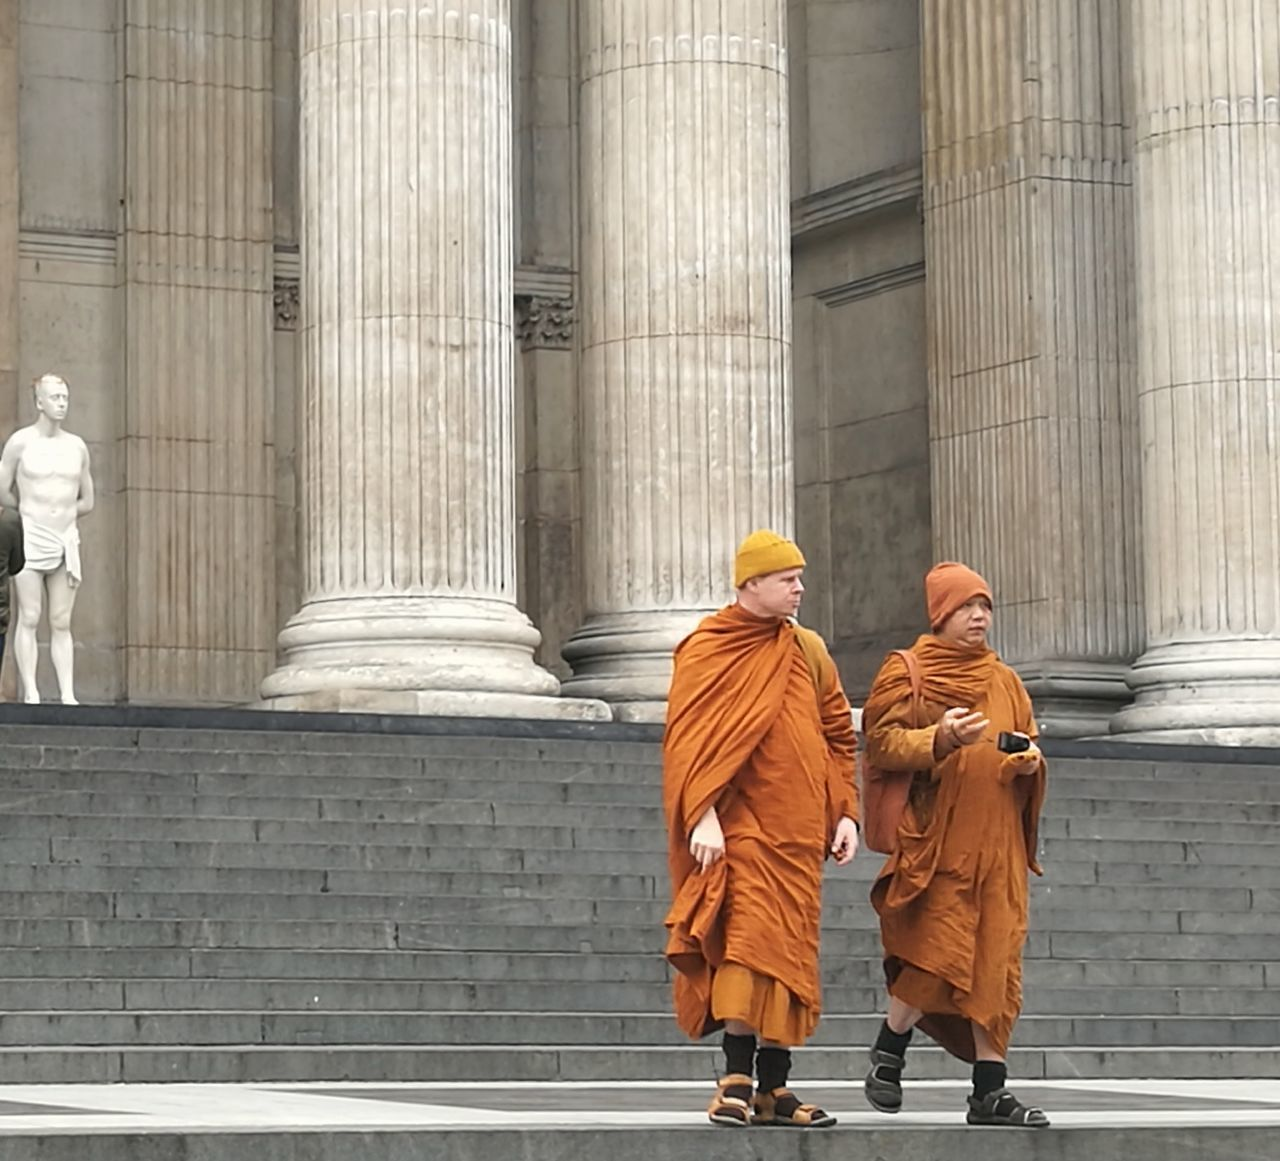 Buddhist monks st pauls cathedral when religion comes together Architectural Column Two People Politics And Government Outdoors StPaulscathedral Stpauls Cathedral London Skyline London Londonlife Architecture Sculpture 4thplinth Marble Steps Matthollick Cityoflondon Visitlondonofficial City Of London Tourism Huaweip9photos